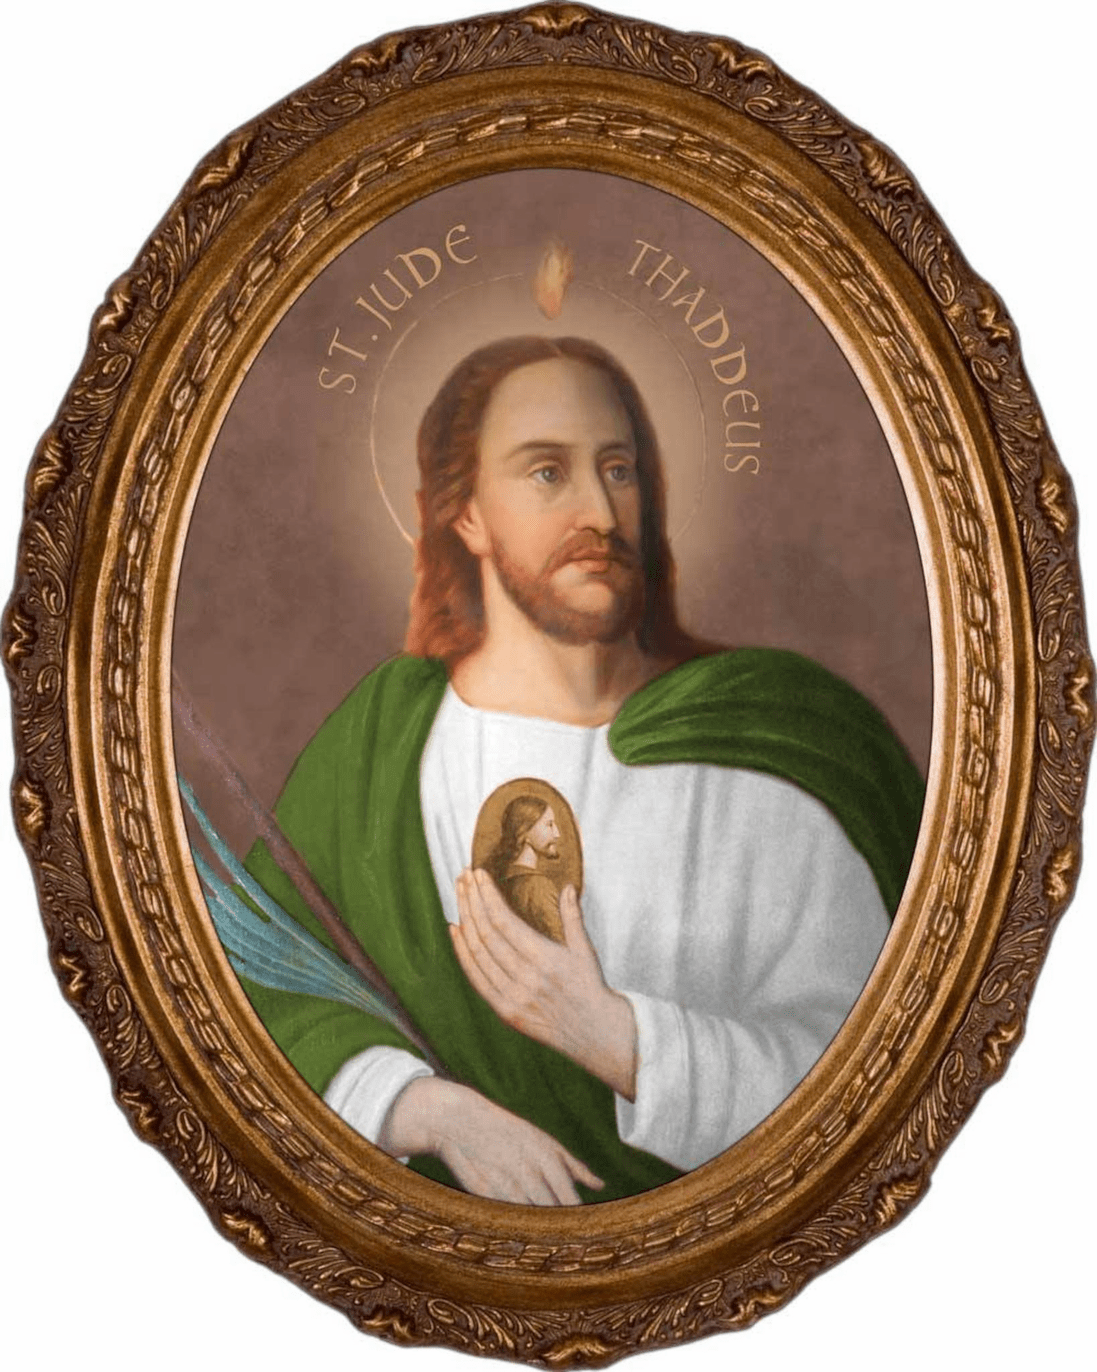 Nelson's Gifts St Jude Thaddeus Canvas in Oval Frame Wall Picture